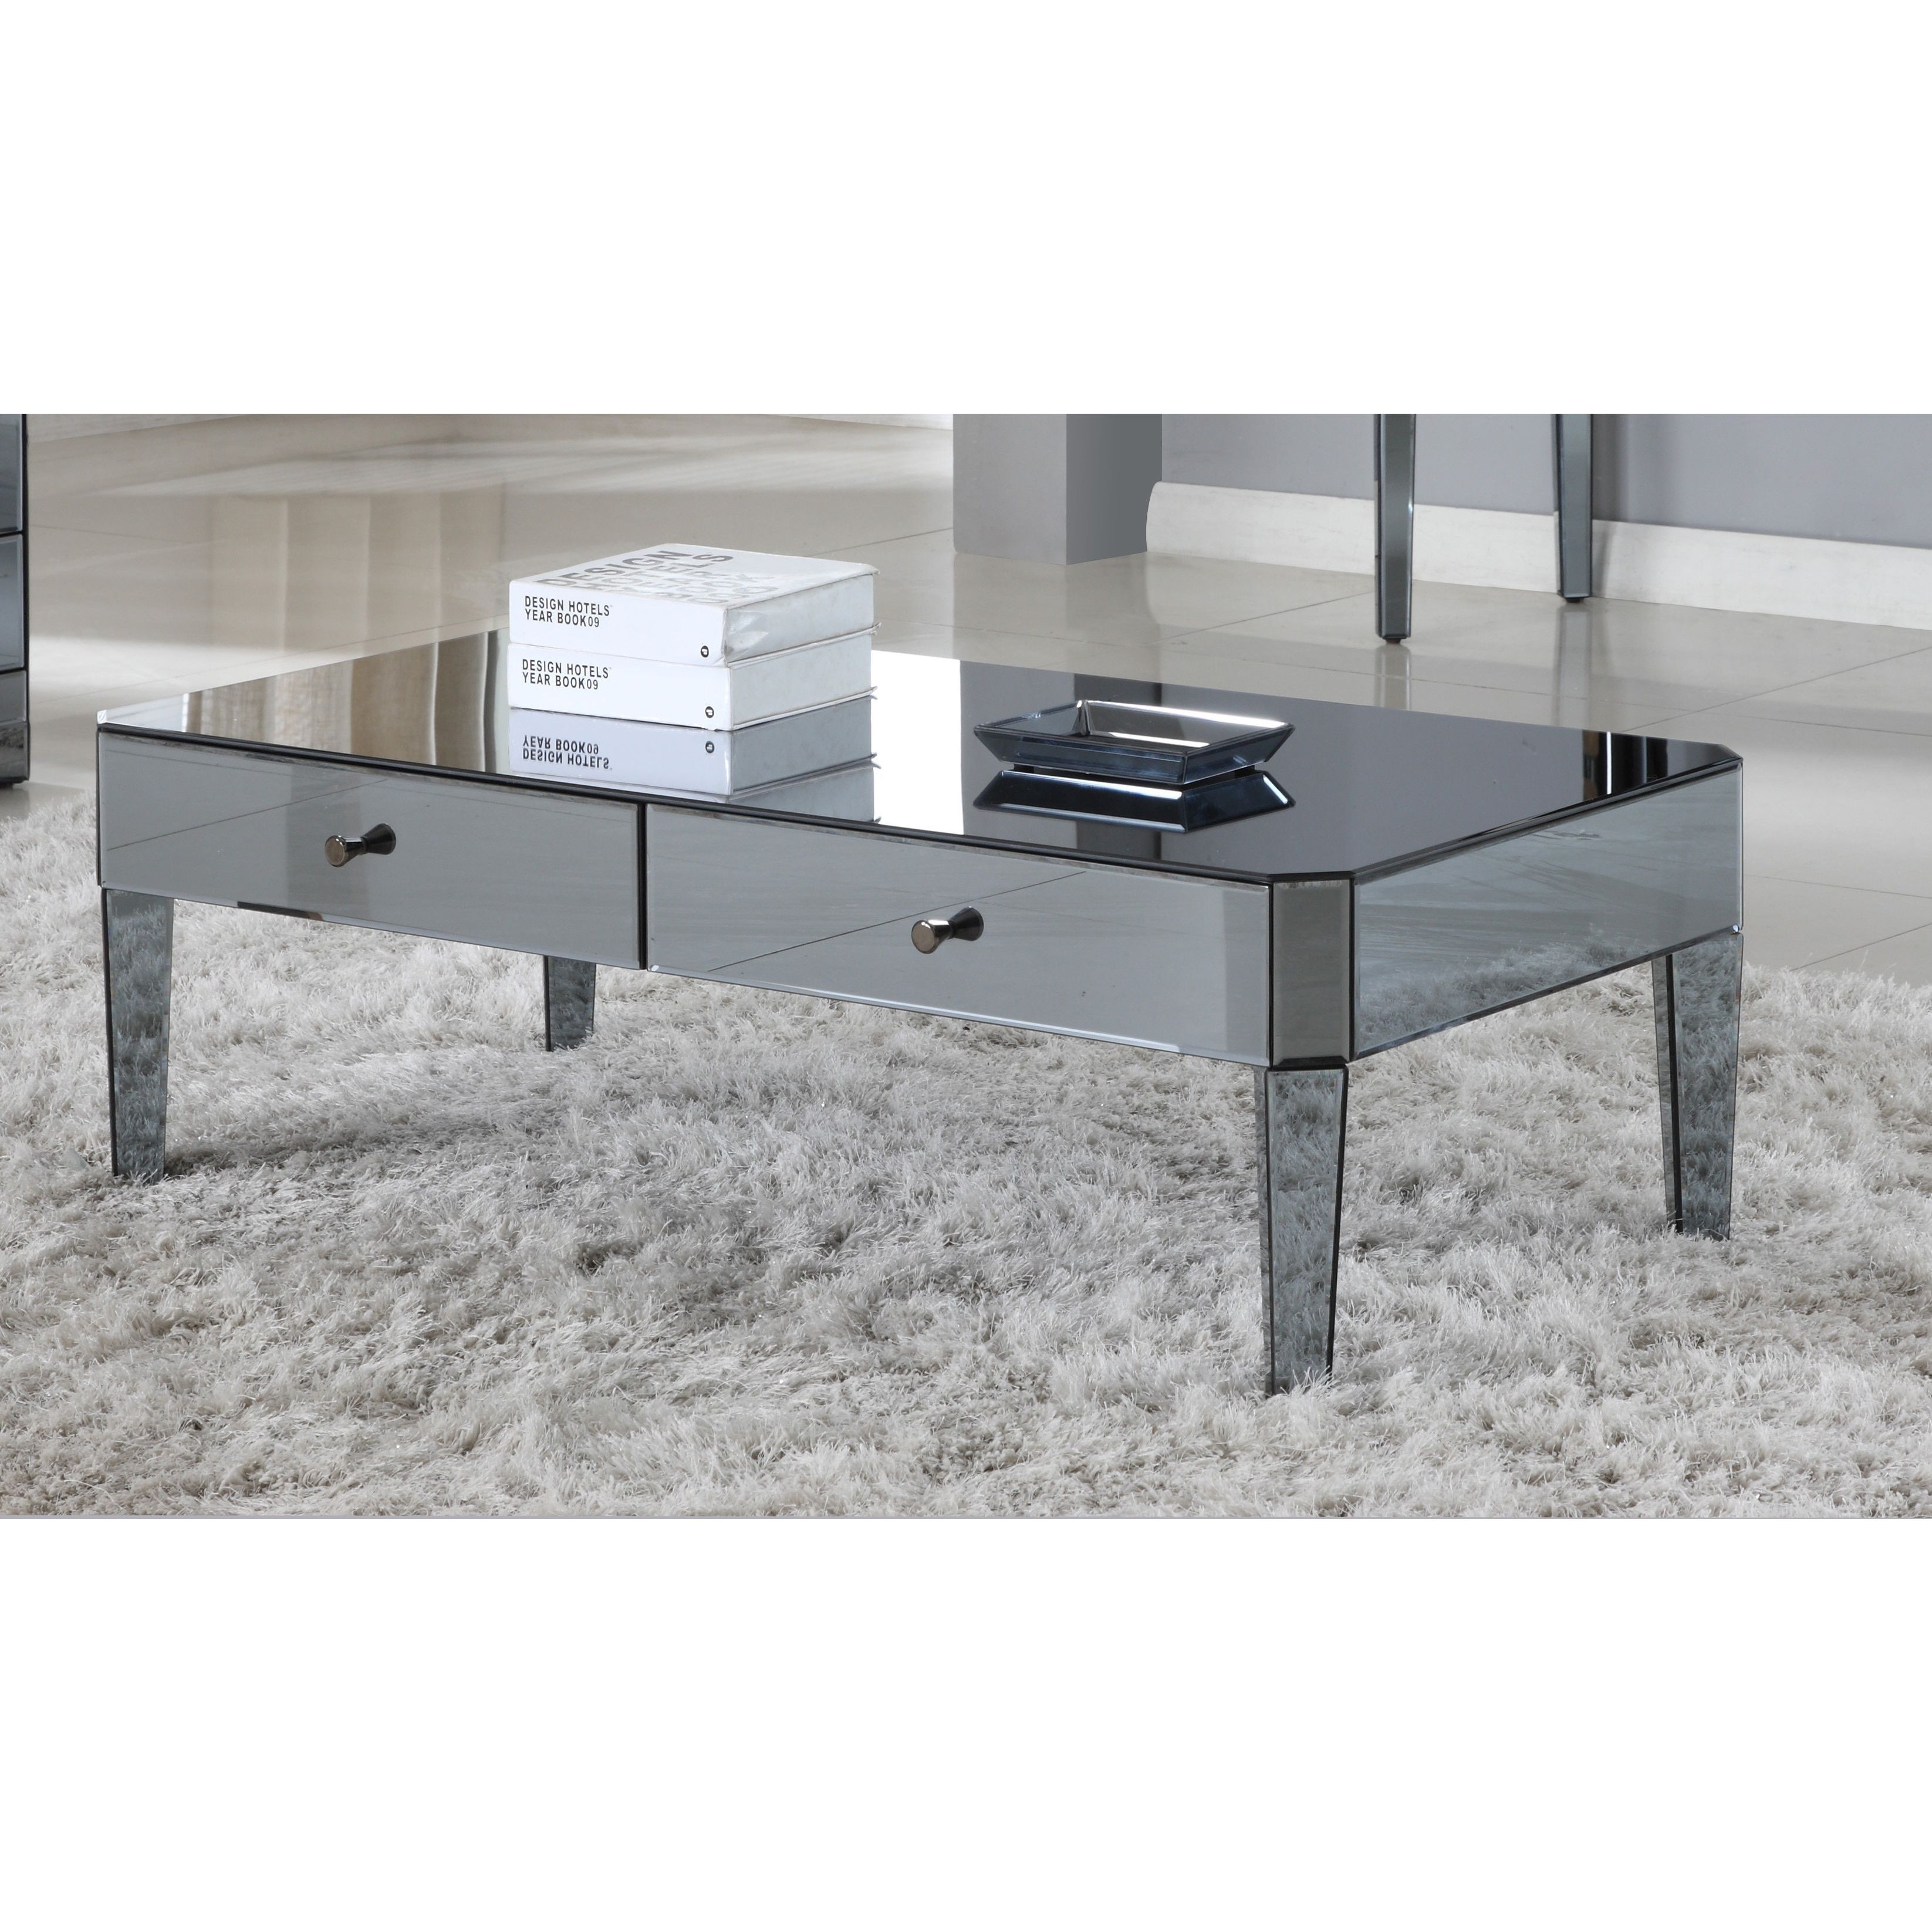 furniture mesmerizing living room and bedroom with mirrored end mirror table bedside small coffee borghese glass accent drawer gal side ikea portable rabat cantilever umbrella